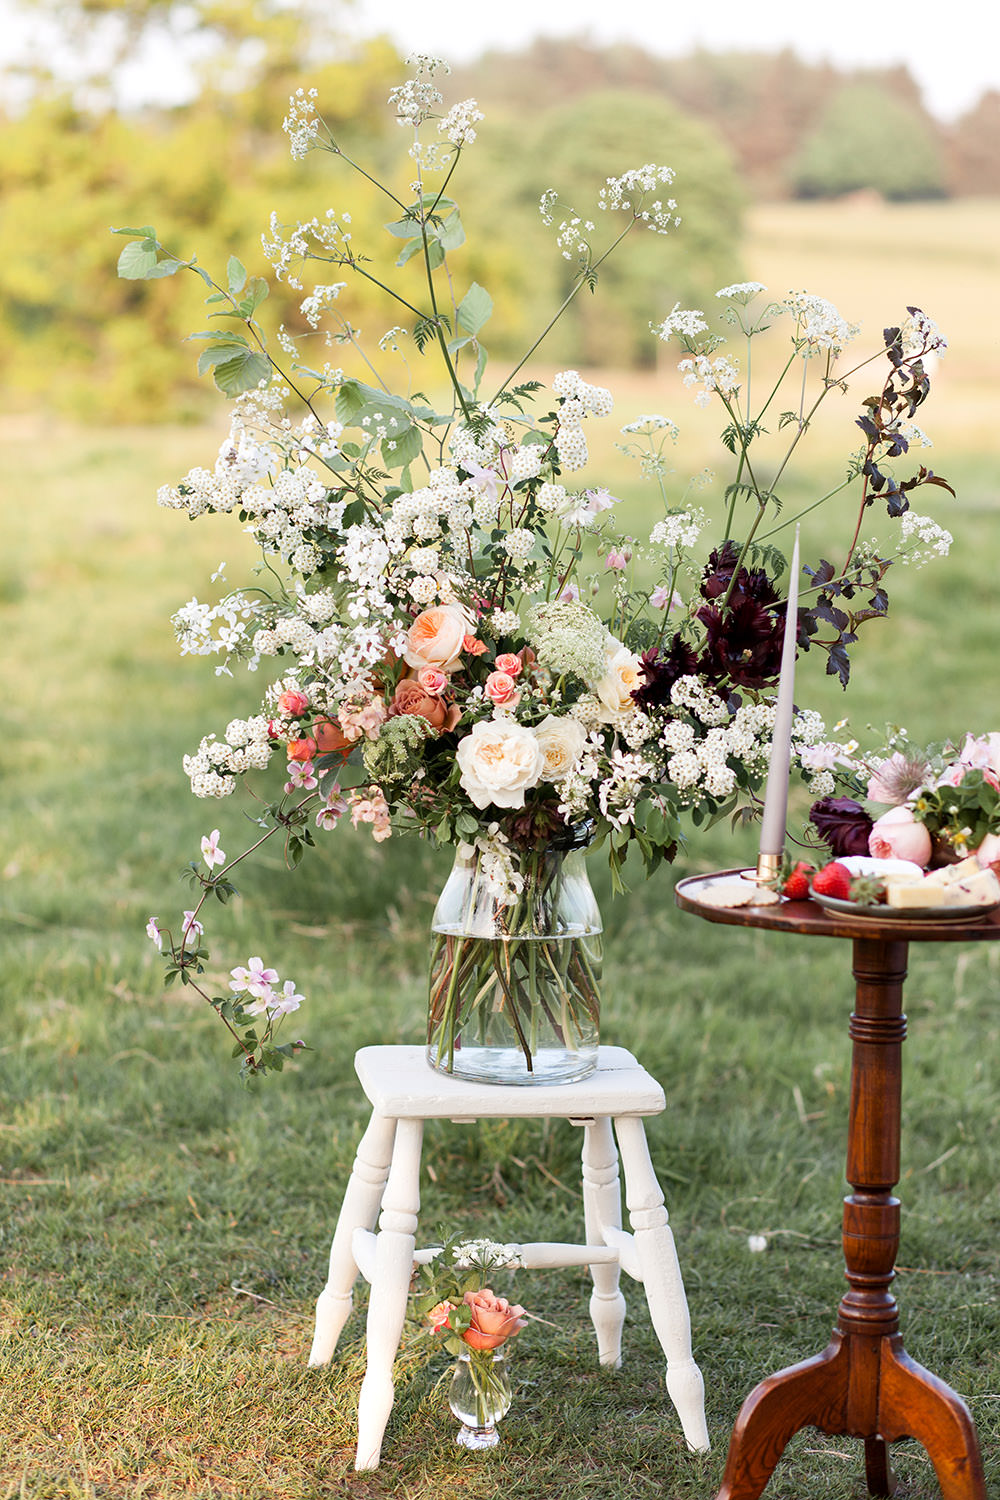 Table Flowers Peach Coral Cream Roses Greenery Foliage Large Vase Tall Light Airy Summer Wedding Ideas Charlotte Palazzo Photography